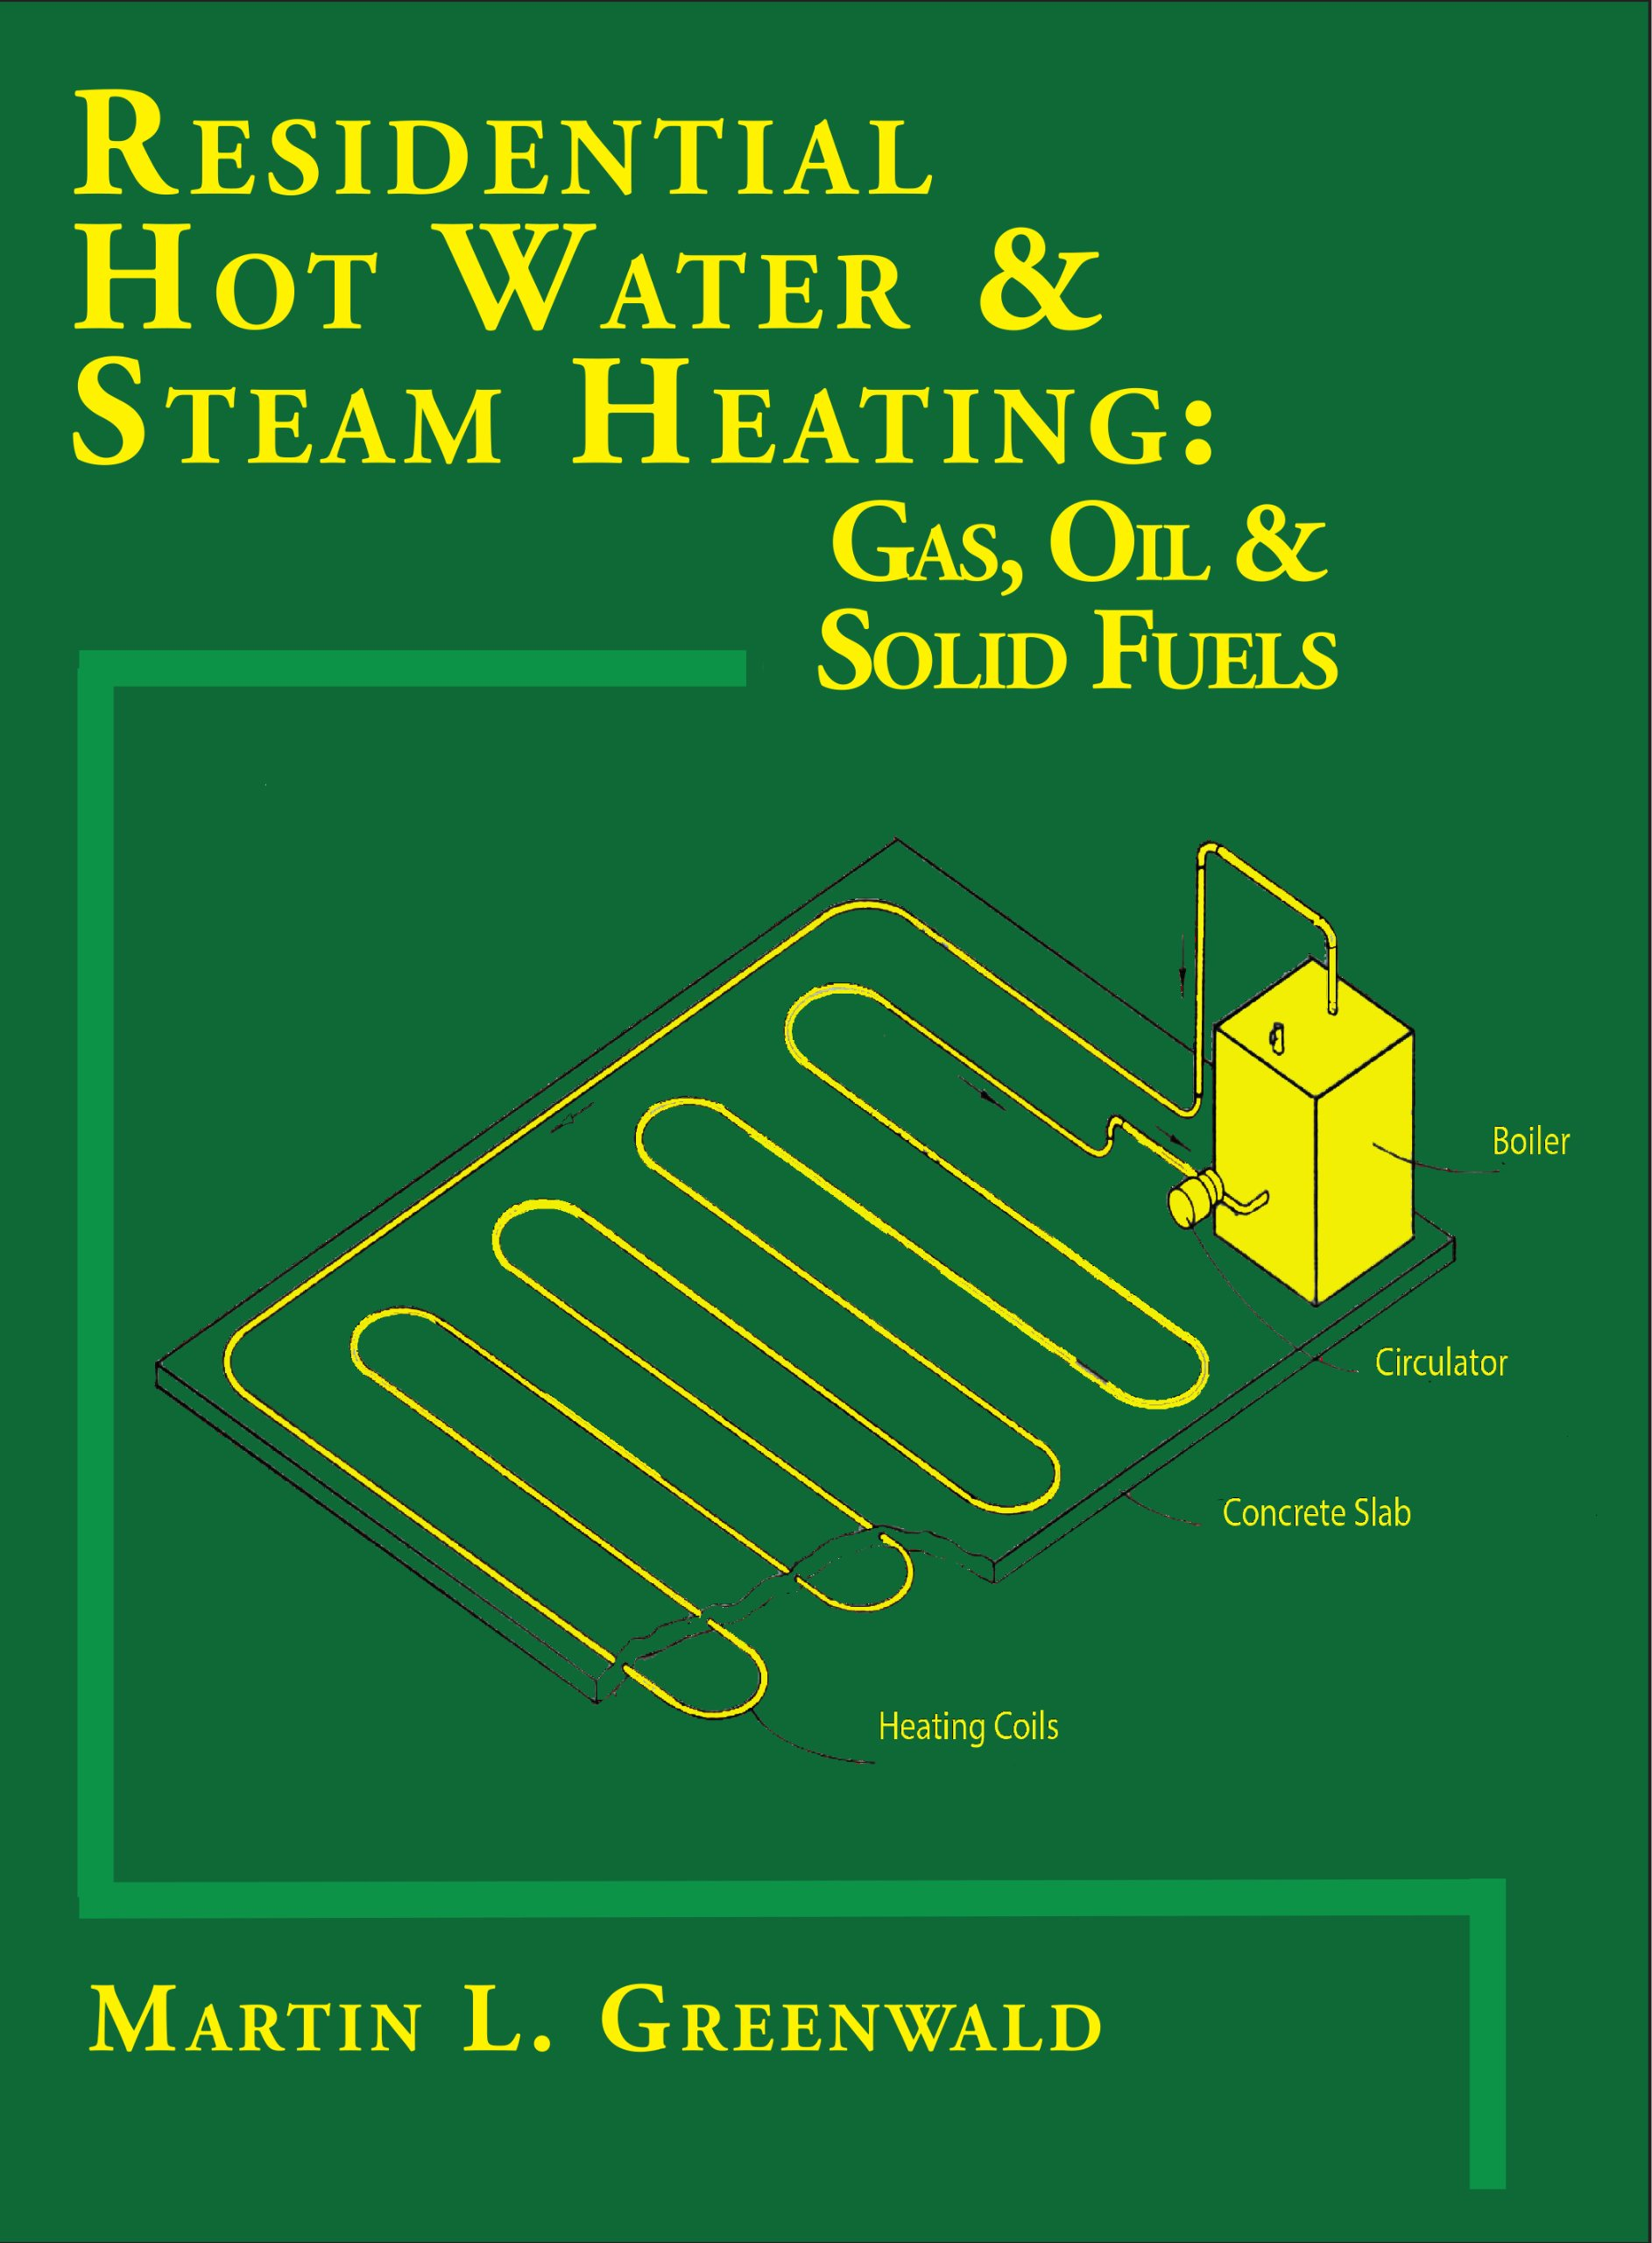 Residential Hot Water And Steam Heating Martin L Greenwald Piping Layout Techniques 9780964205192 Books